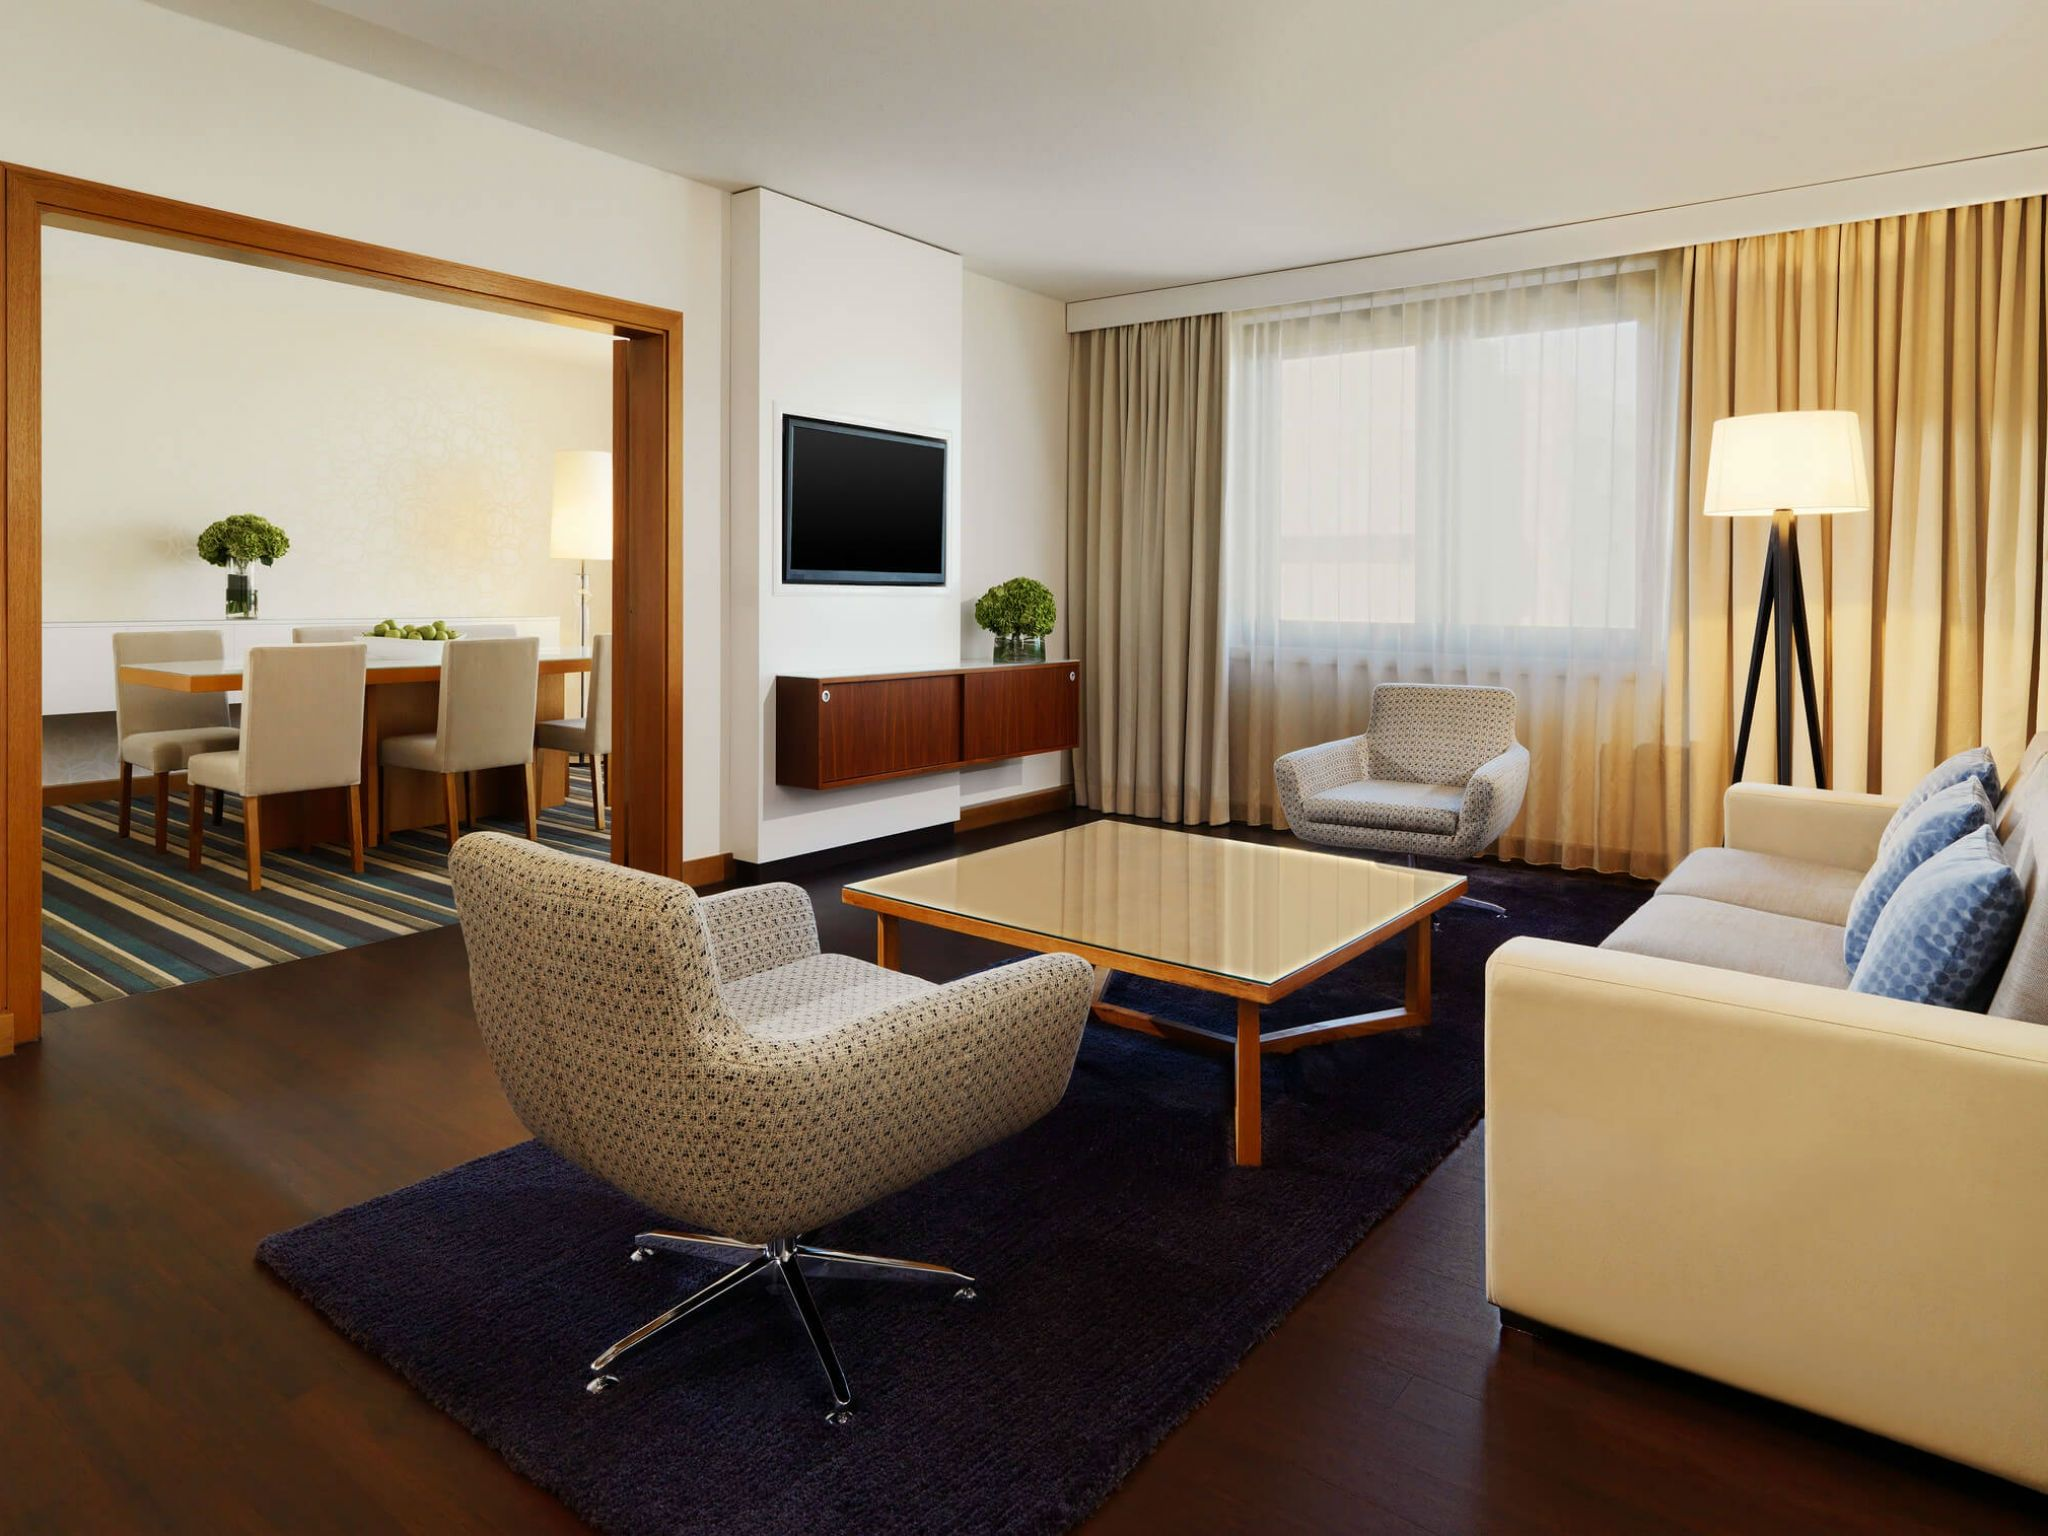 Sheraton Grand Suite Frankfurt - Sheraton Frankfurt Airport Hotel & Conference Center